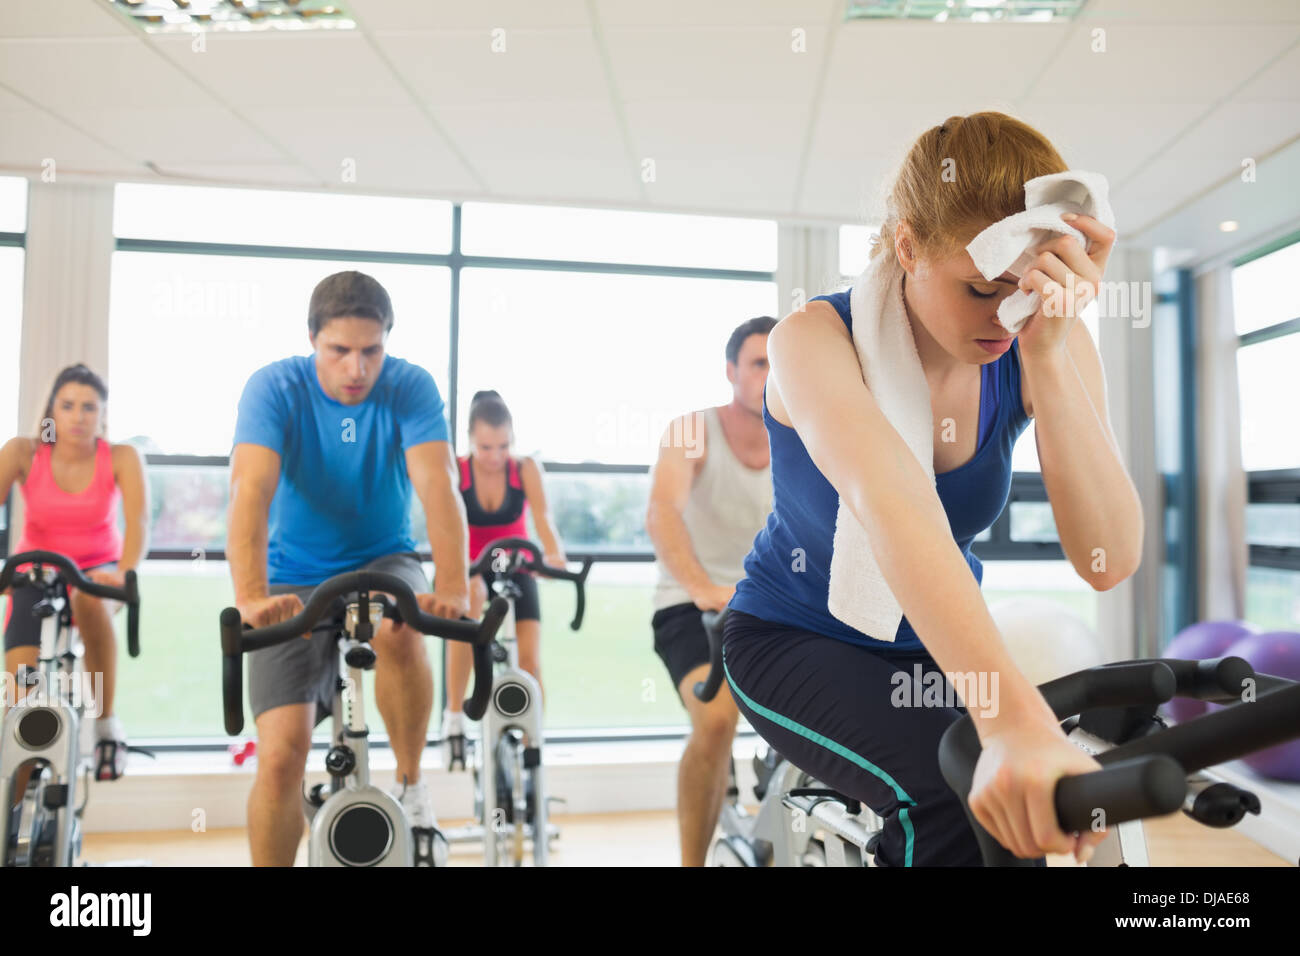 Tired people working out at spinning class - Stock Image